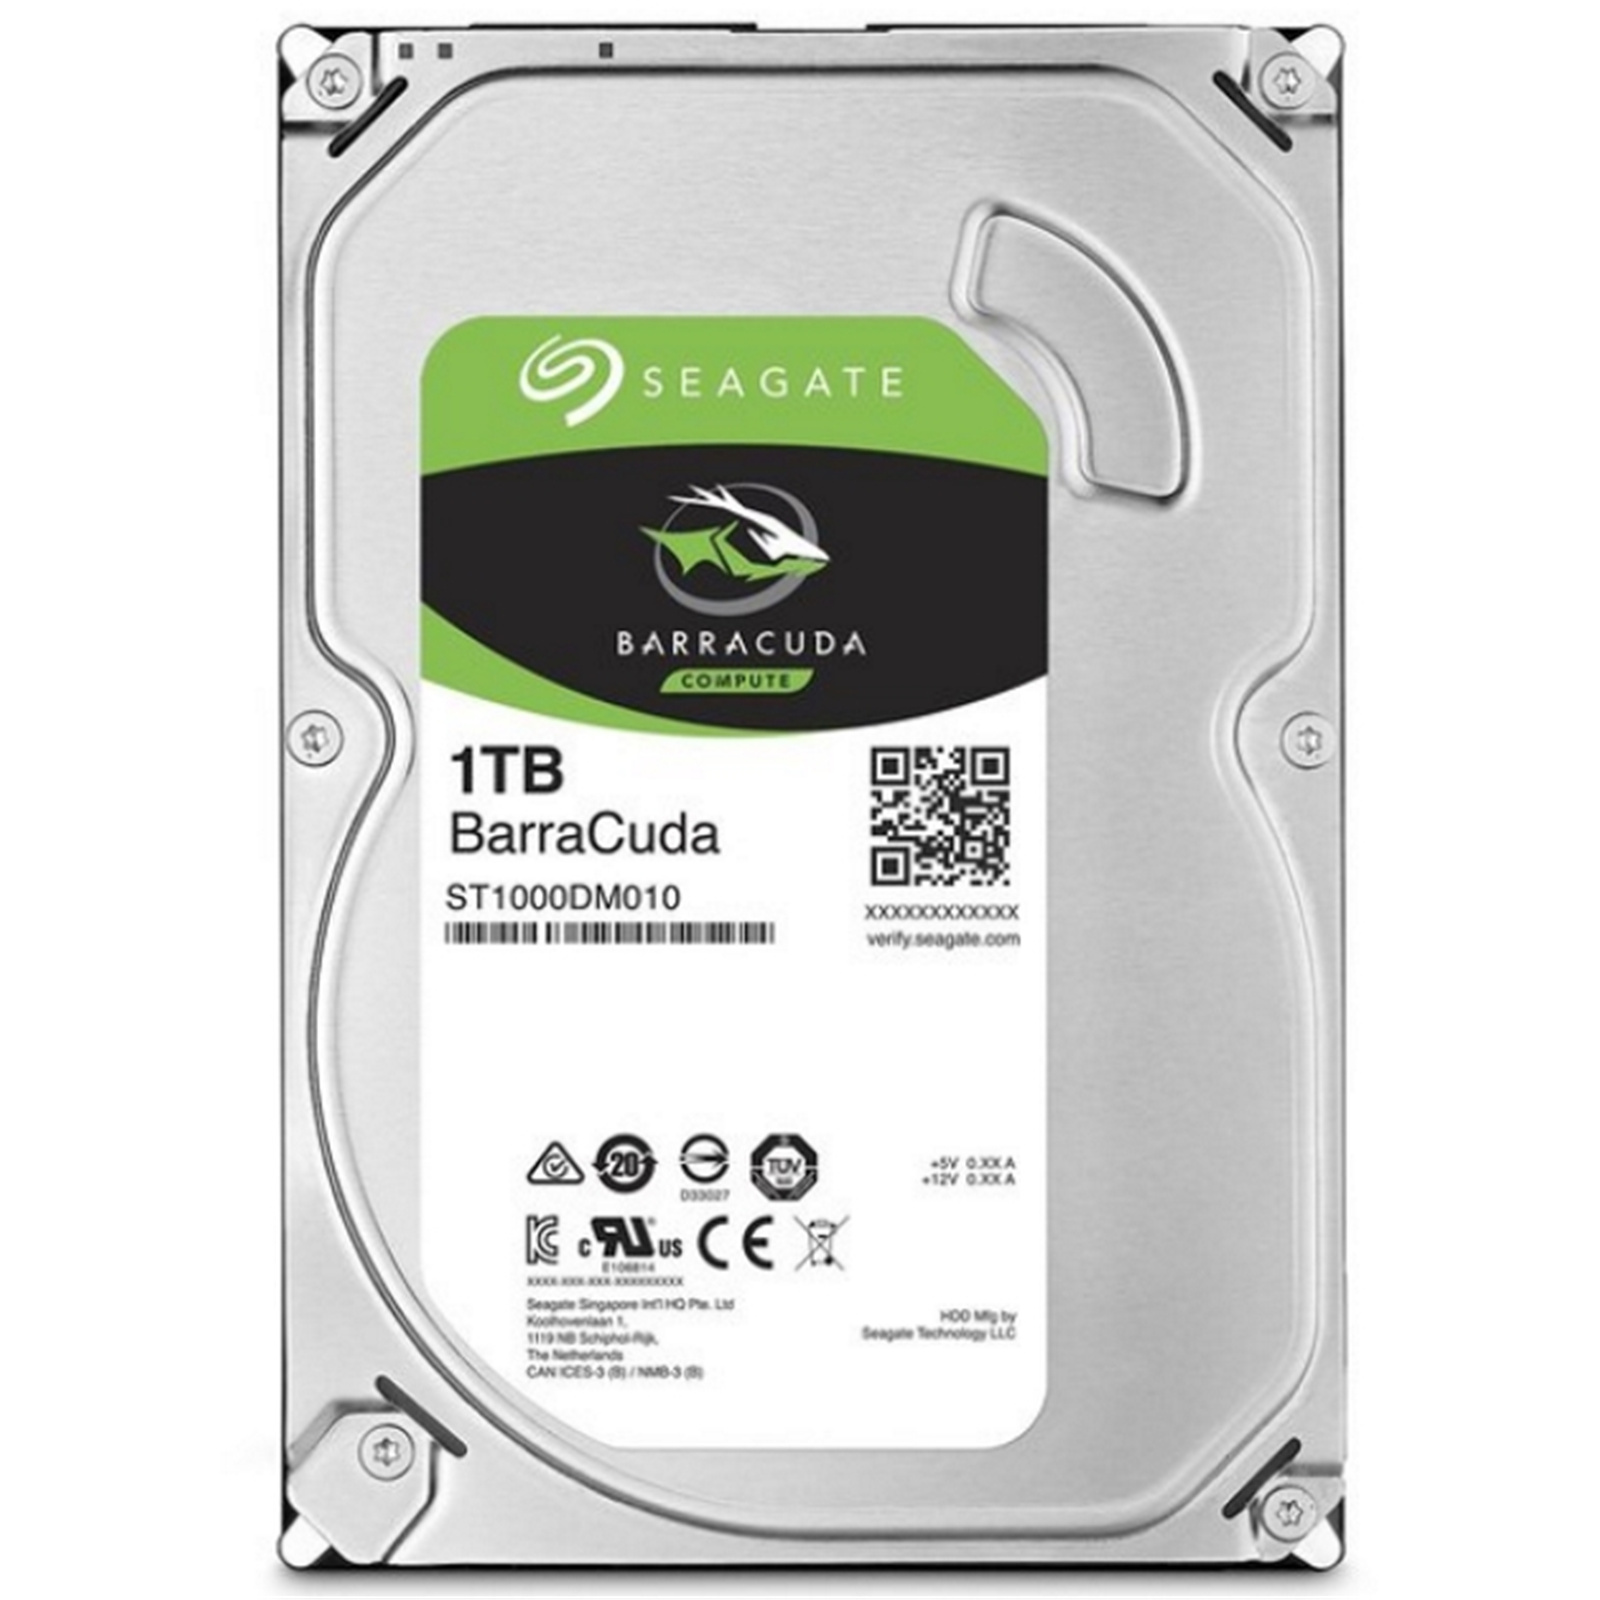 Seagate BarraCuda 1TB SATA3 3.5 inch 7200RPM 64MB Internal HDD ( 2 years warranty )